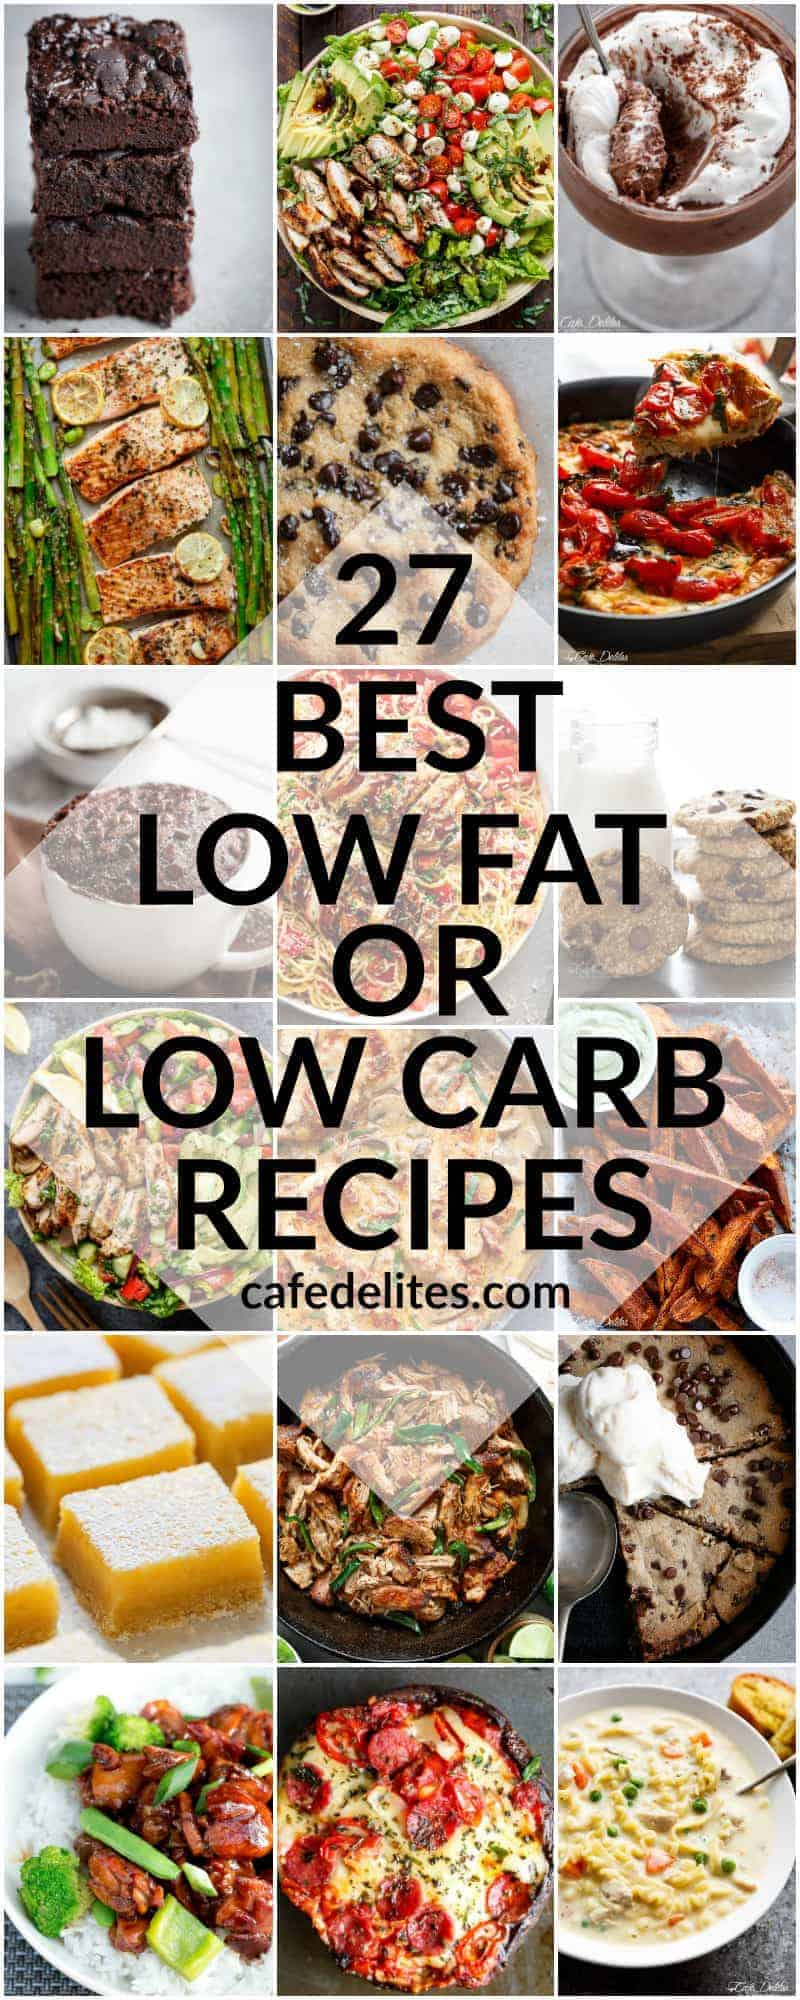 27 BEST LOW FAT & LOW CARB RECIPES FOR 2017 | https://cafedelites.com